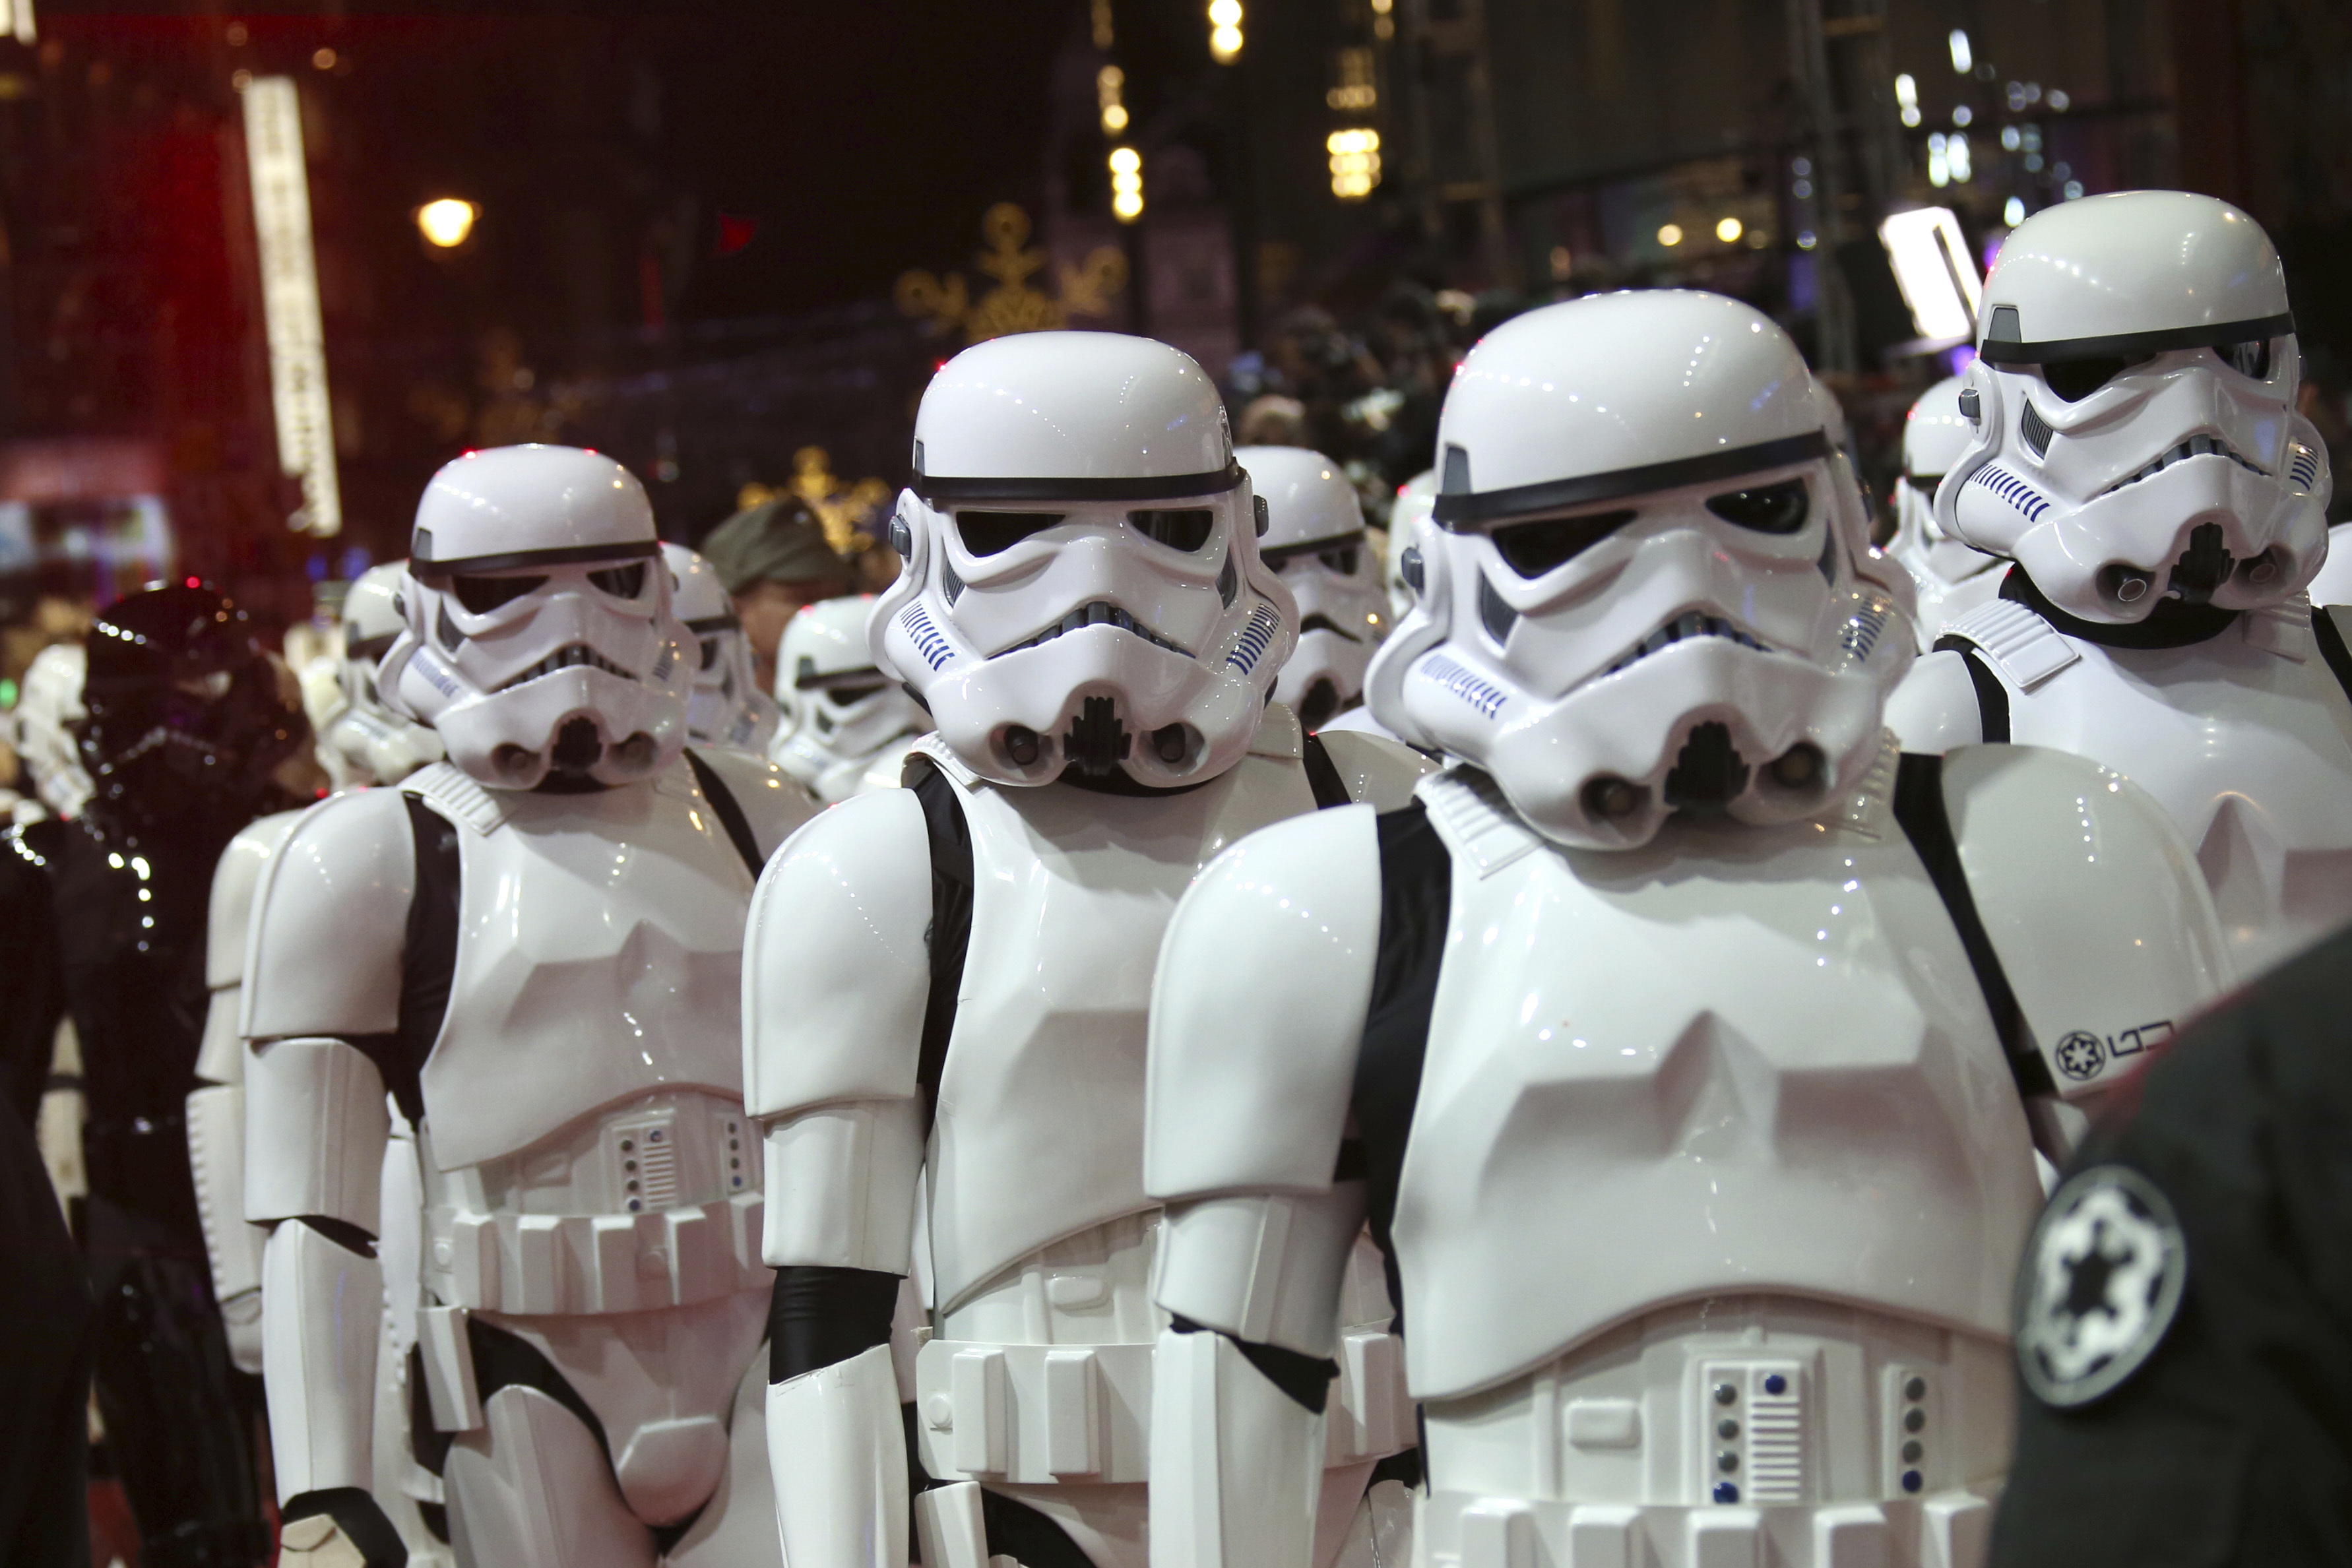 A fake news story this week said the next Star Wars movie is being filmed in a number of cities and hundreds of extras are needed.